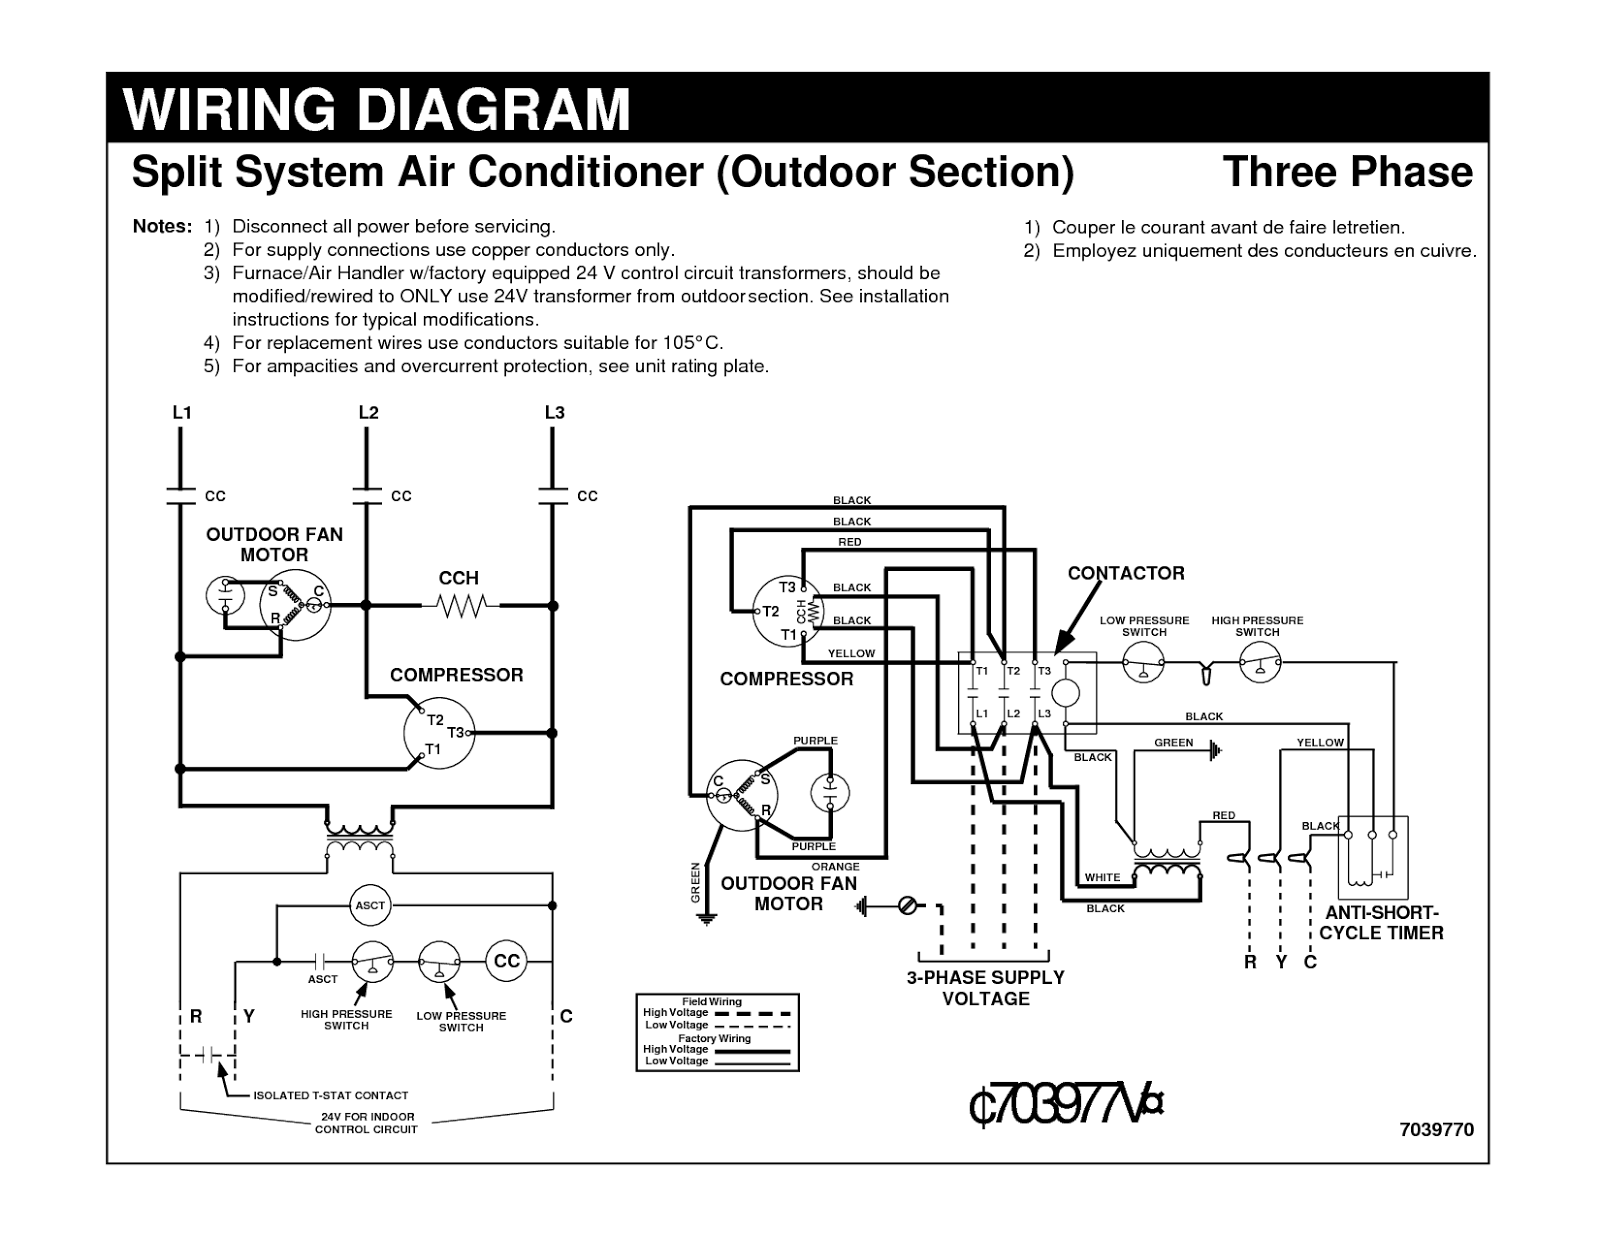 electrical wiring diagrams for air conditioning systems part one Wiring Diagram for Oven  Cover for Air Conditioning Unit Coil for Air Conditioning Unit Wiring Diagram for Stove